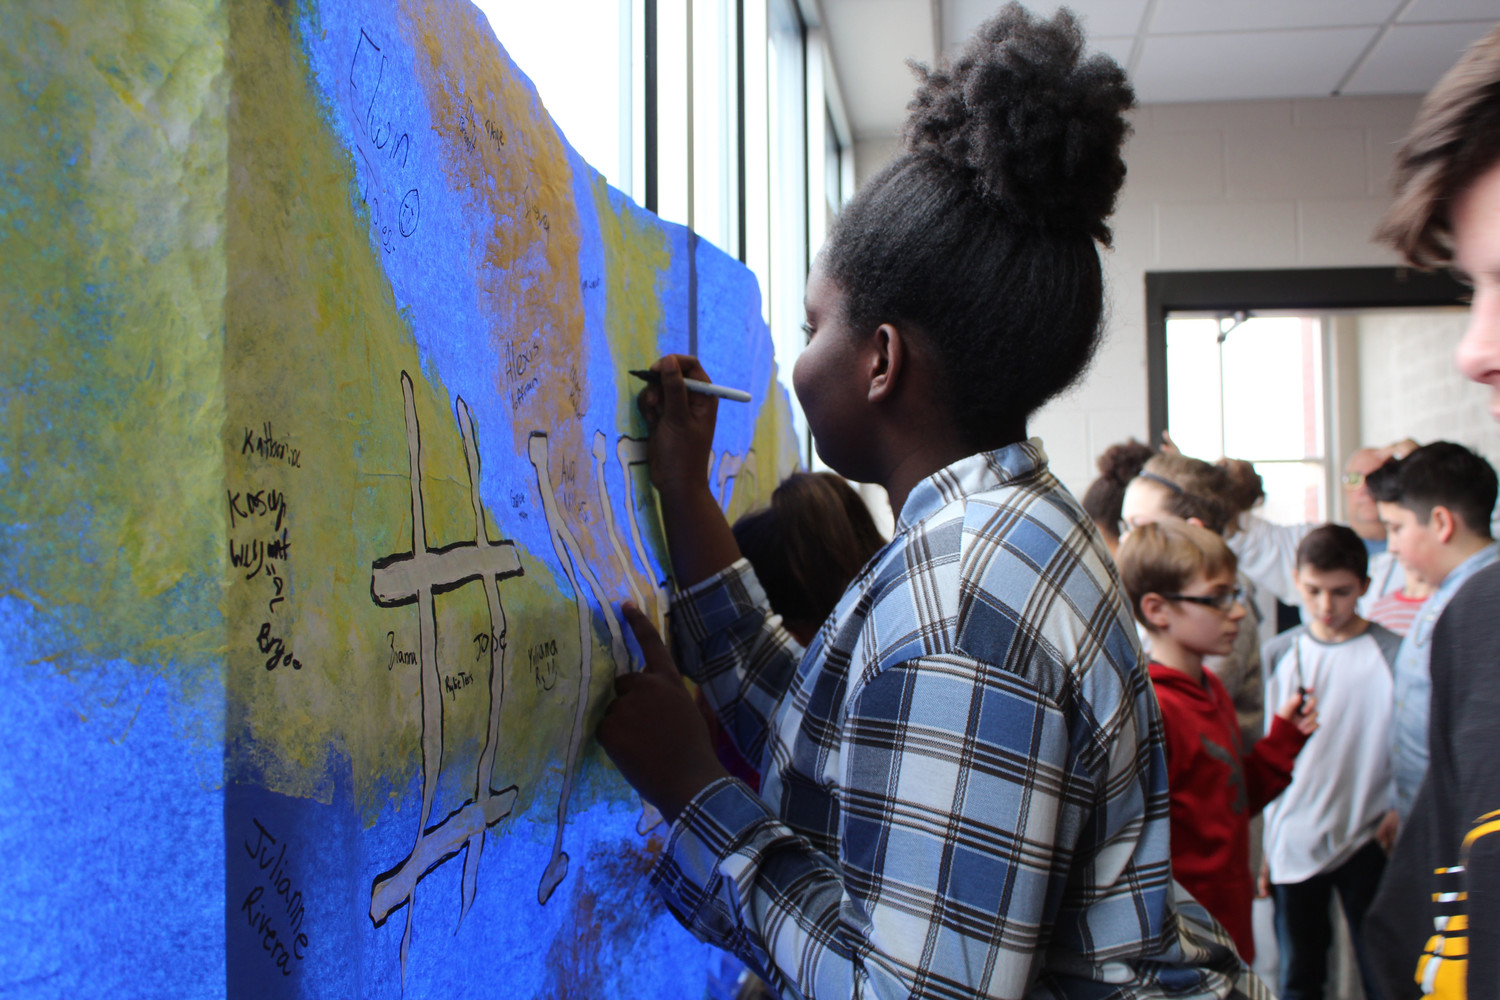 After the moment of silence, students like Sade Robinson signed a banner that will hang in the lobby.